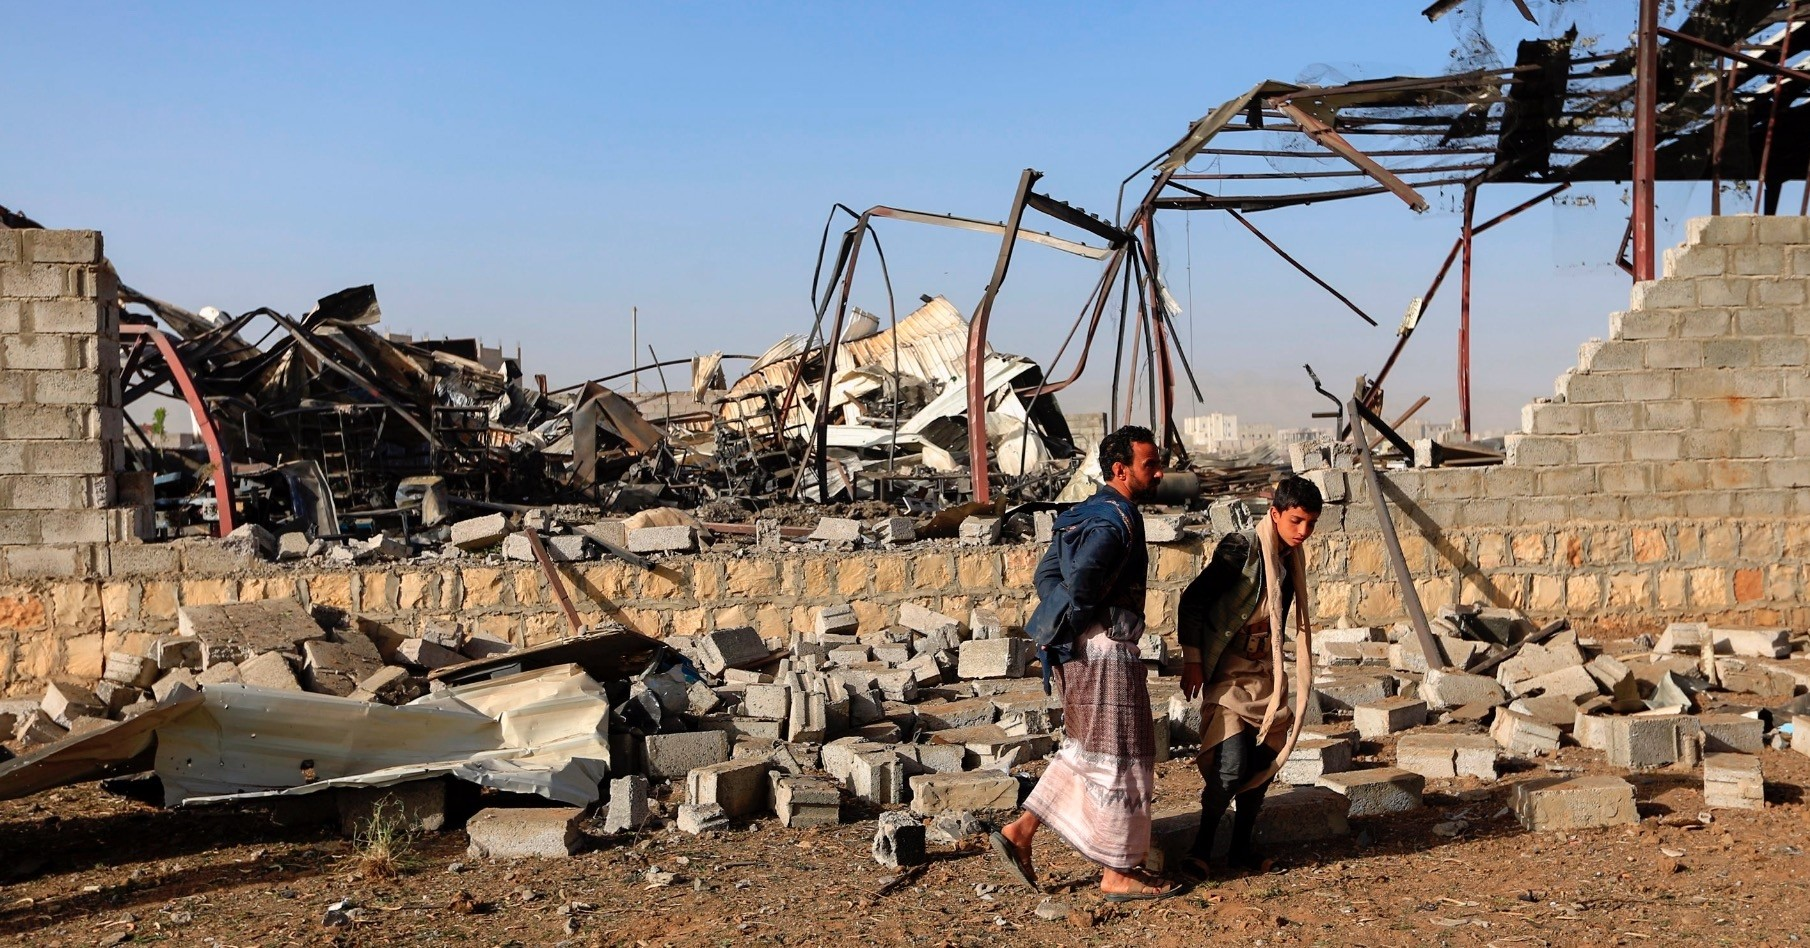 Civilians inspect the damage at a factory after a reported airstrike by the Saudi-led coalition, Sanaa, Jan. 20, 2019.